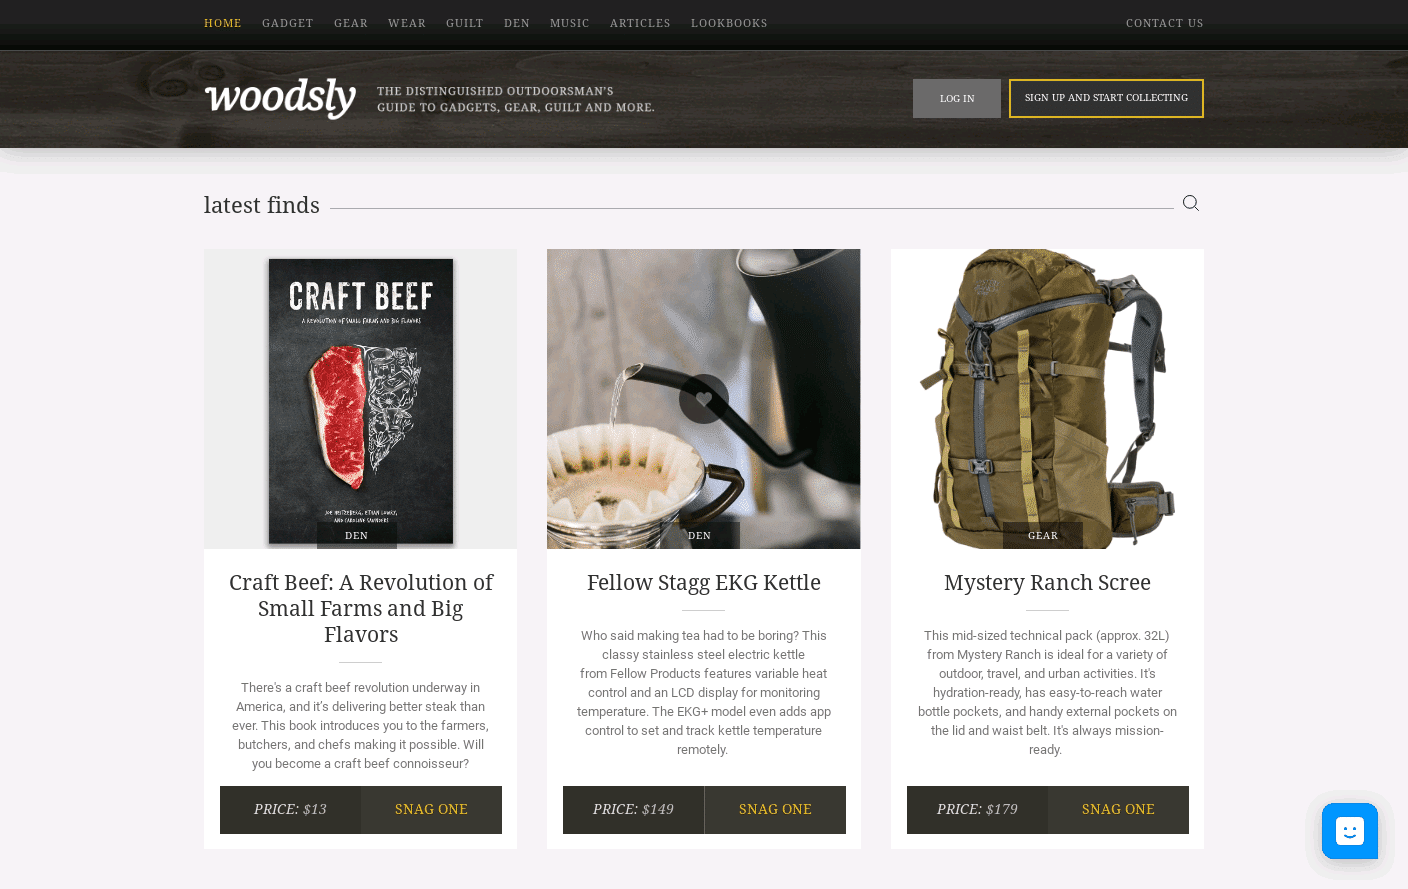 Woodsly: Our Latest Finds